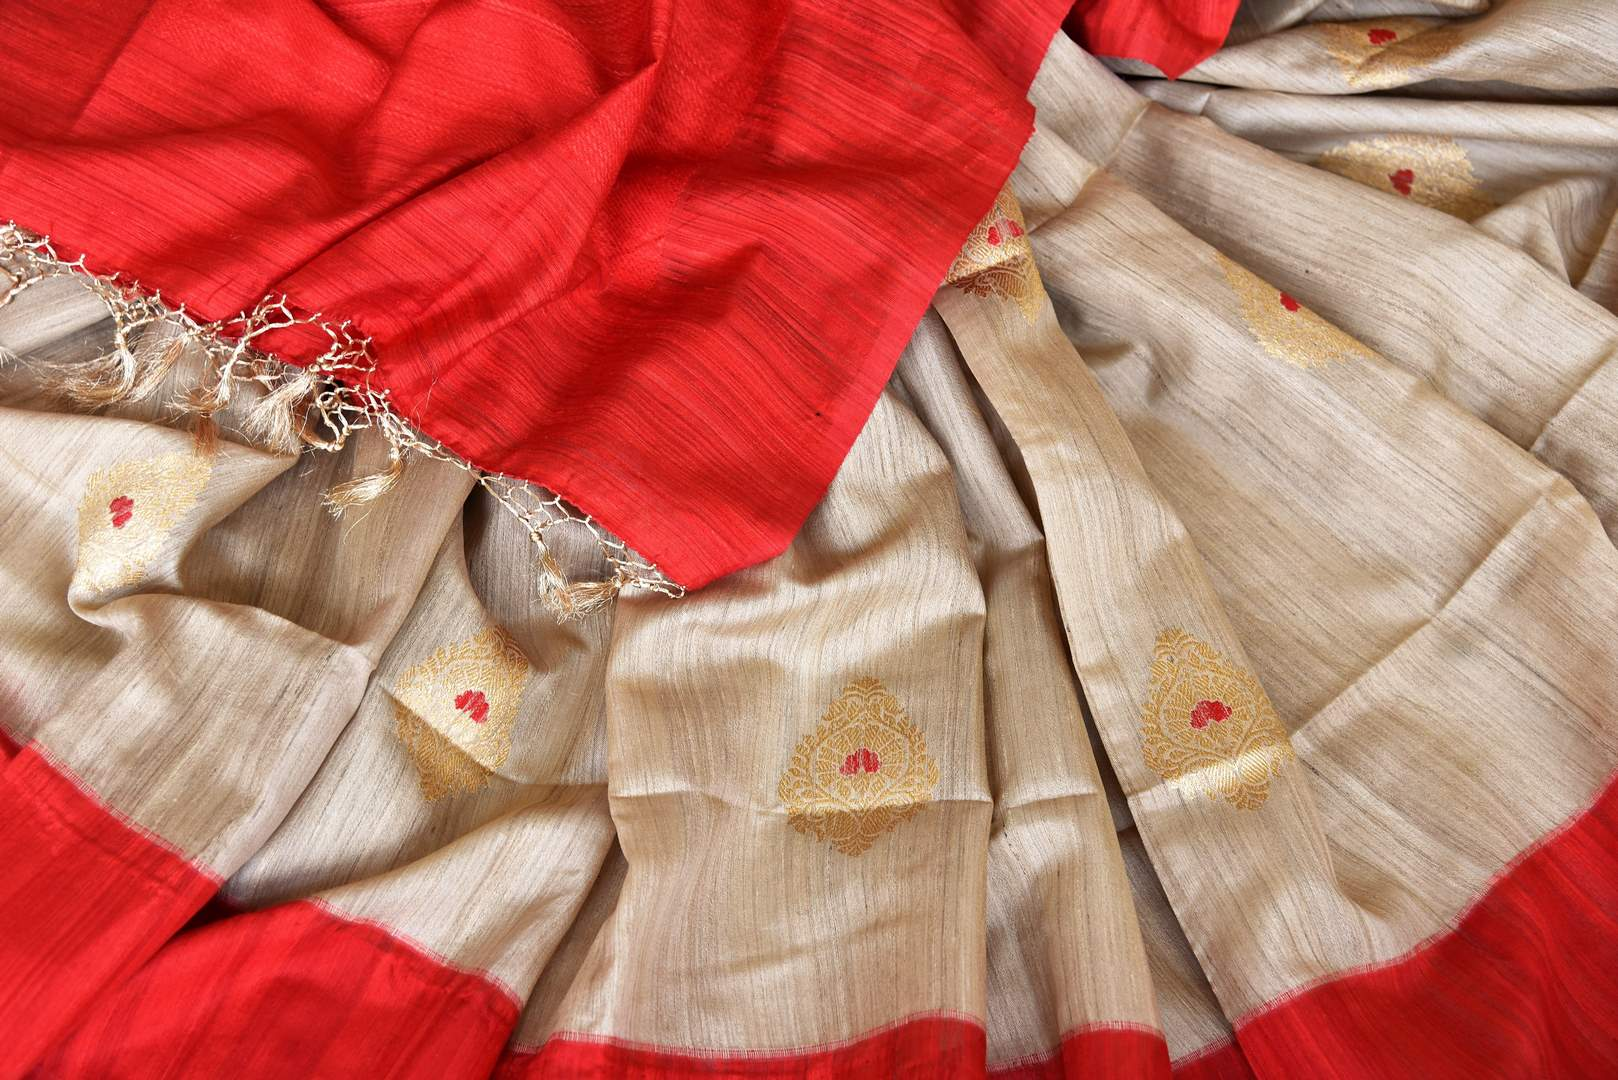 Shop beige tussar Banarasi saree online in USA with zari buta. Keep your wardrobe update with latest Indian handwoven saris from Pure Elegance Indian fashion store in USA. Shop beautiful Benarasi sarees, pure silk sarees, Kanchipuram sarees for Indian women in USA from our online store.-details